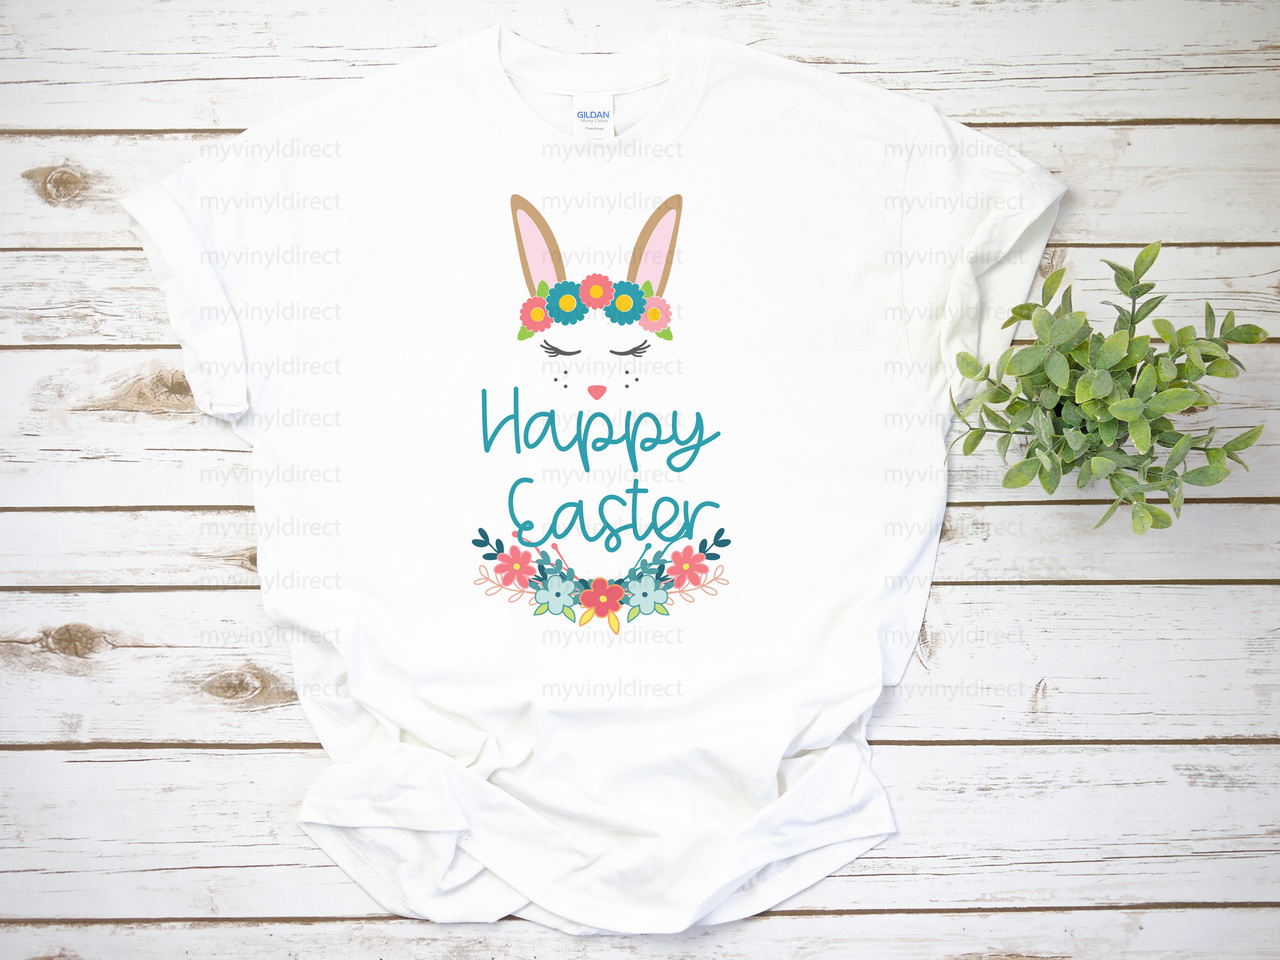 Stitch Eating Chocolate Easter Bunny Sublimation Heat Transfers For T-Shirts or Hoodies Multiple Sizes.